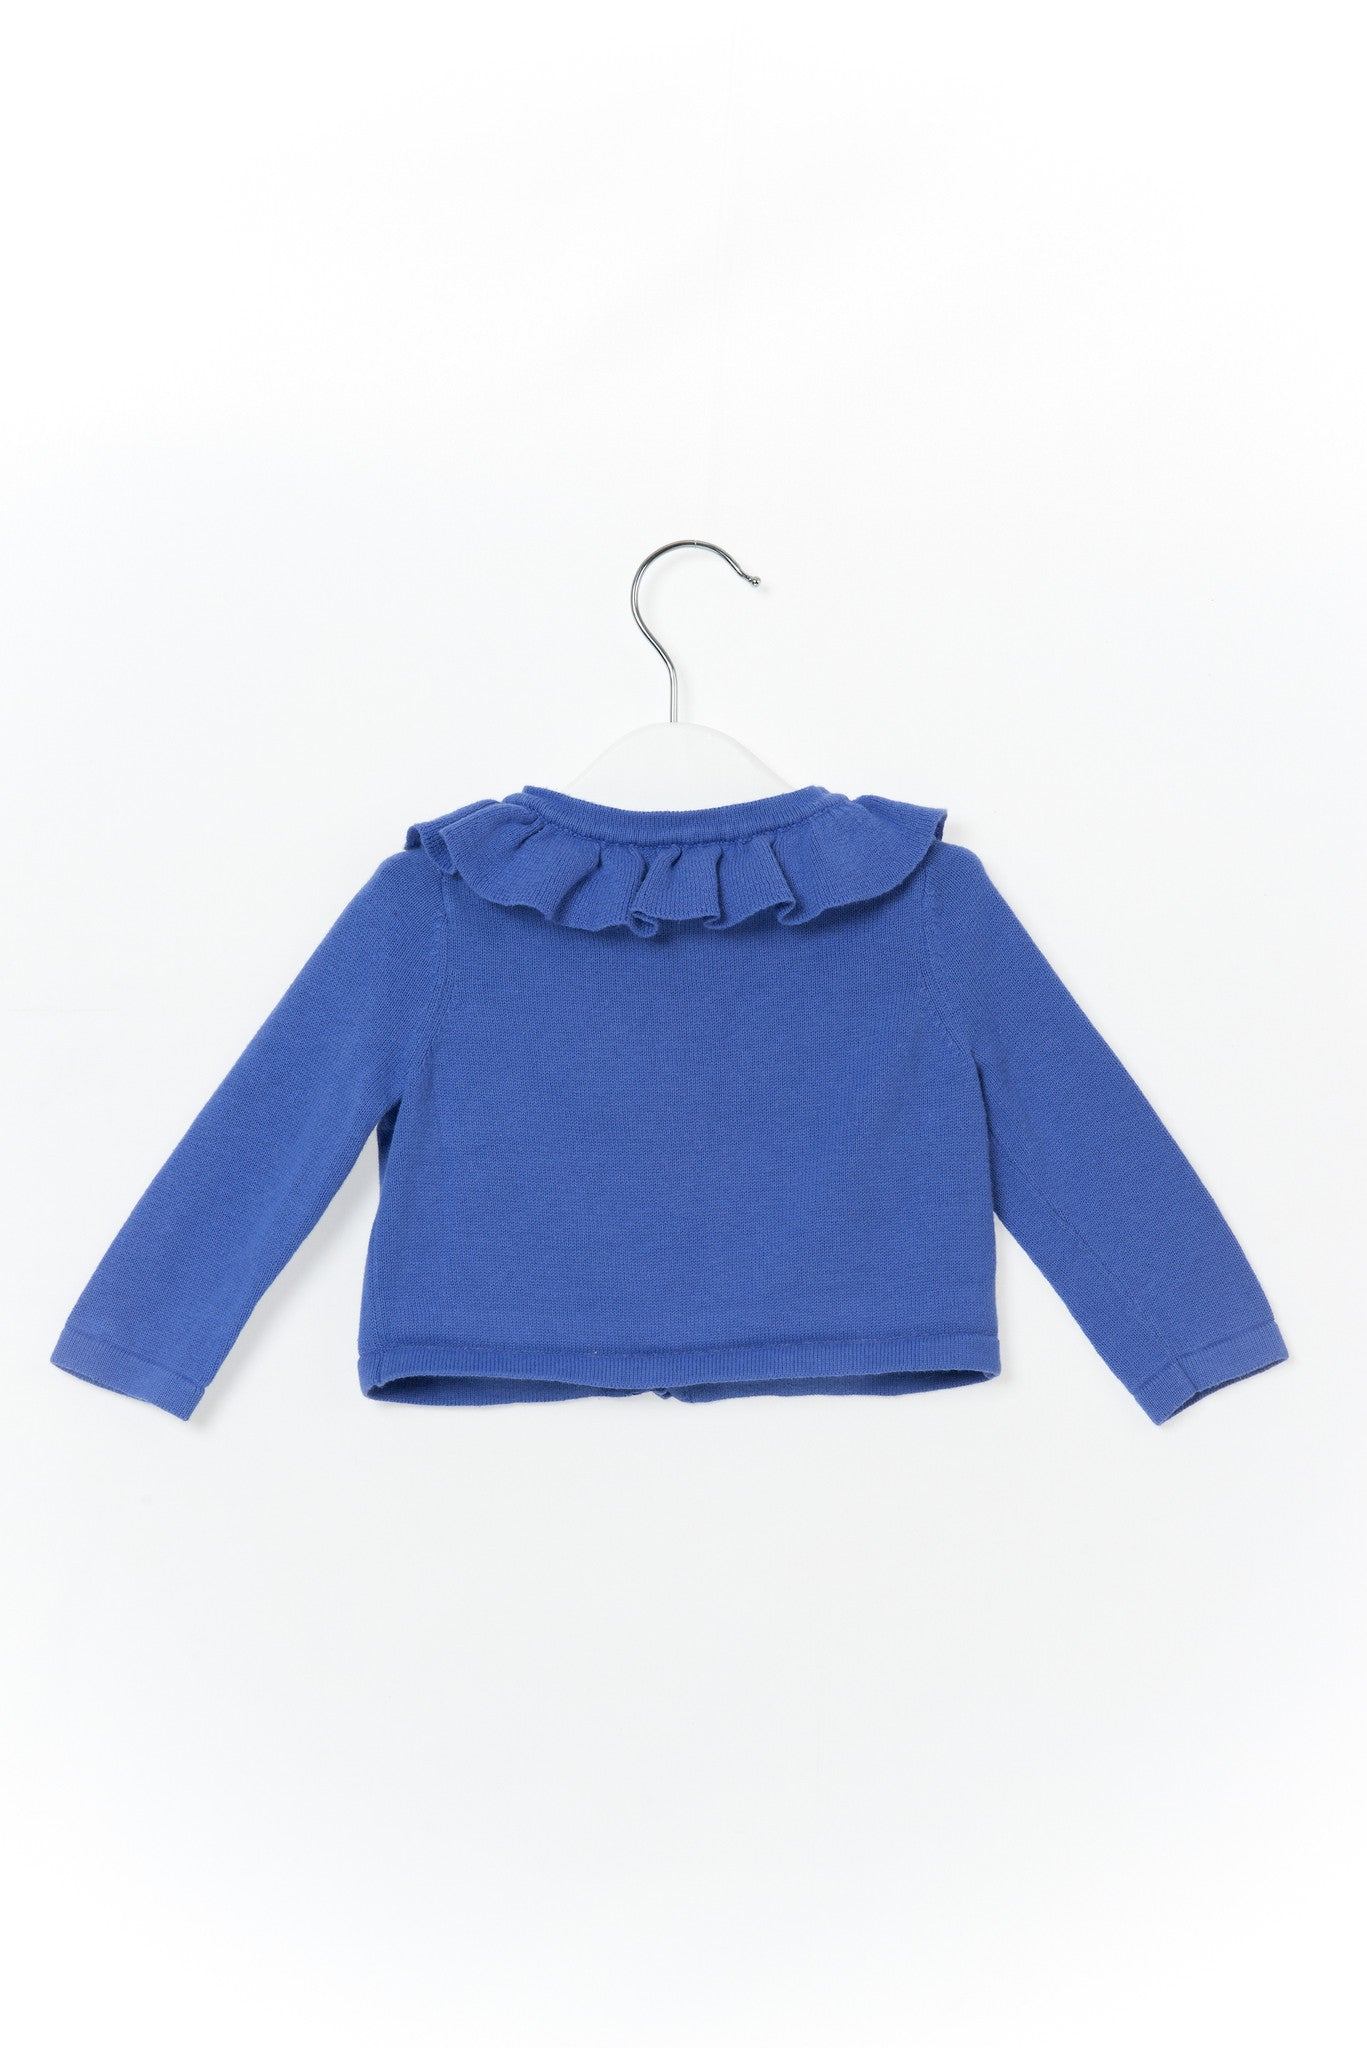 Janie & Jack at Retykle | Online Shopping Discount Baby & Kids Clothes Hong Kong